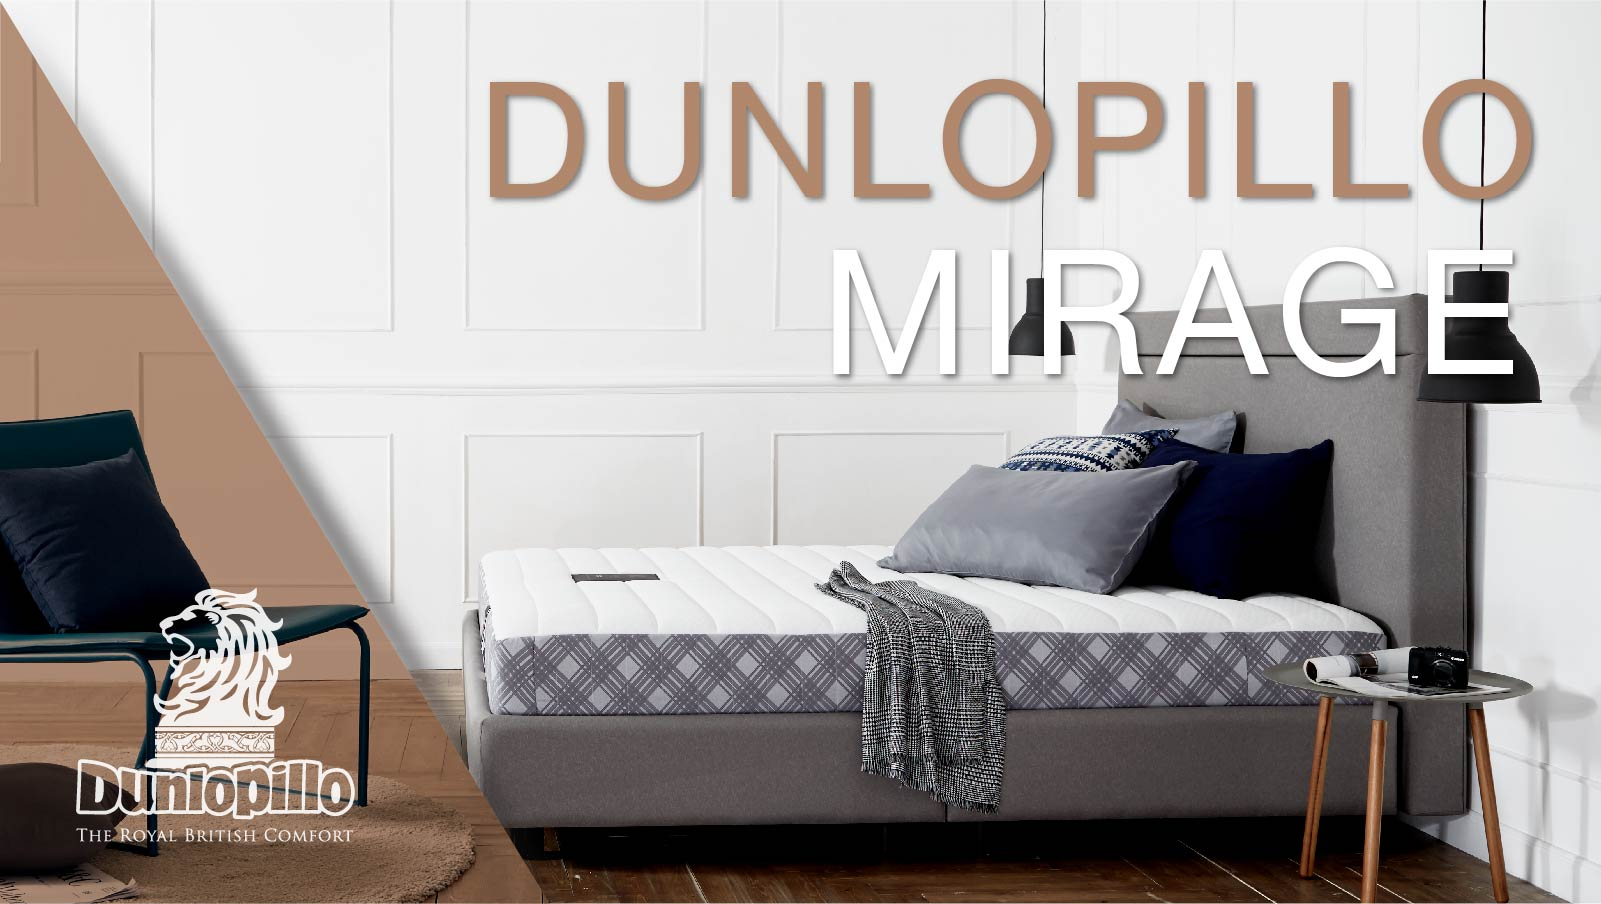 Dunlopillo Mattress - Mirage